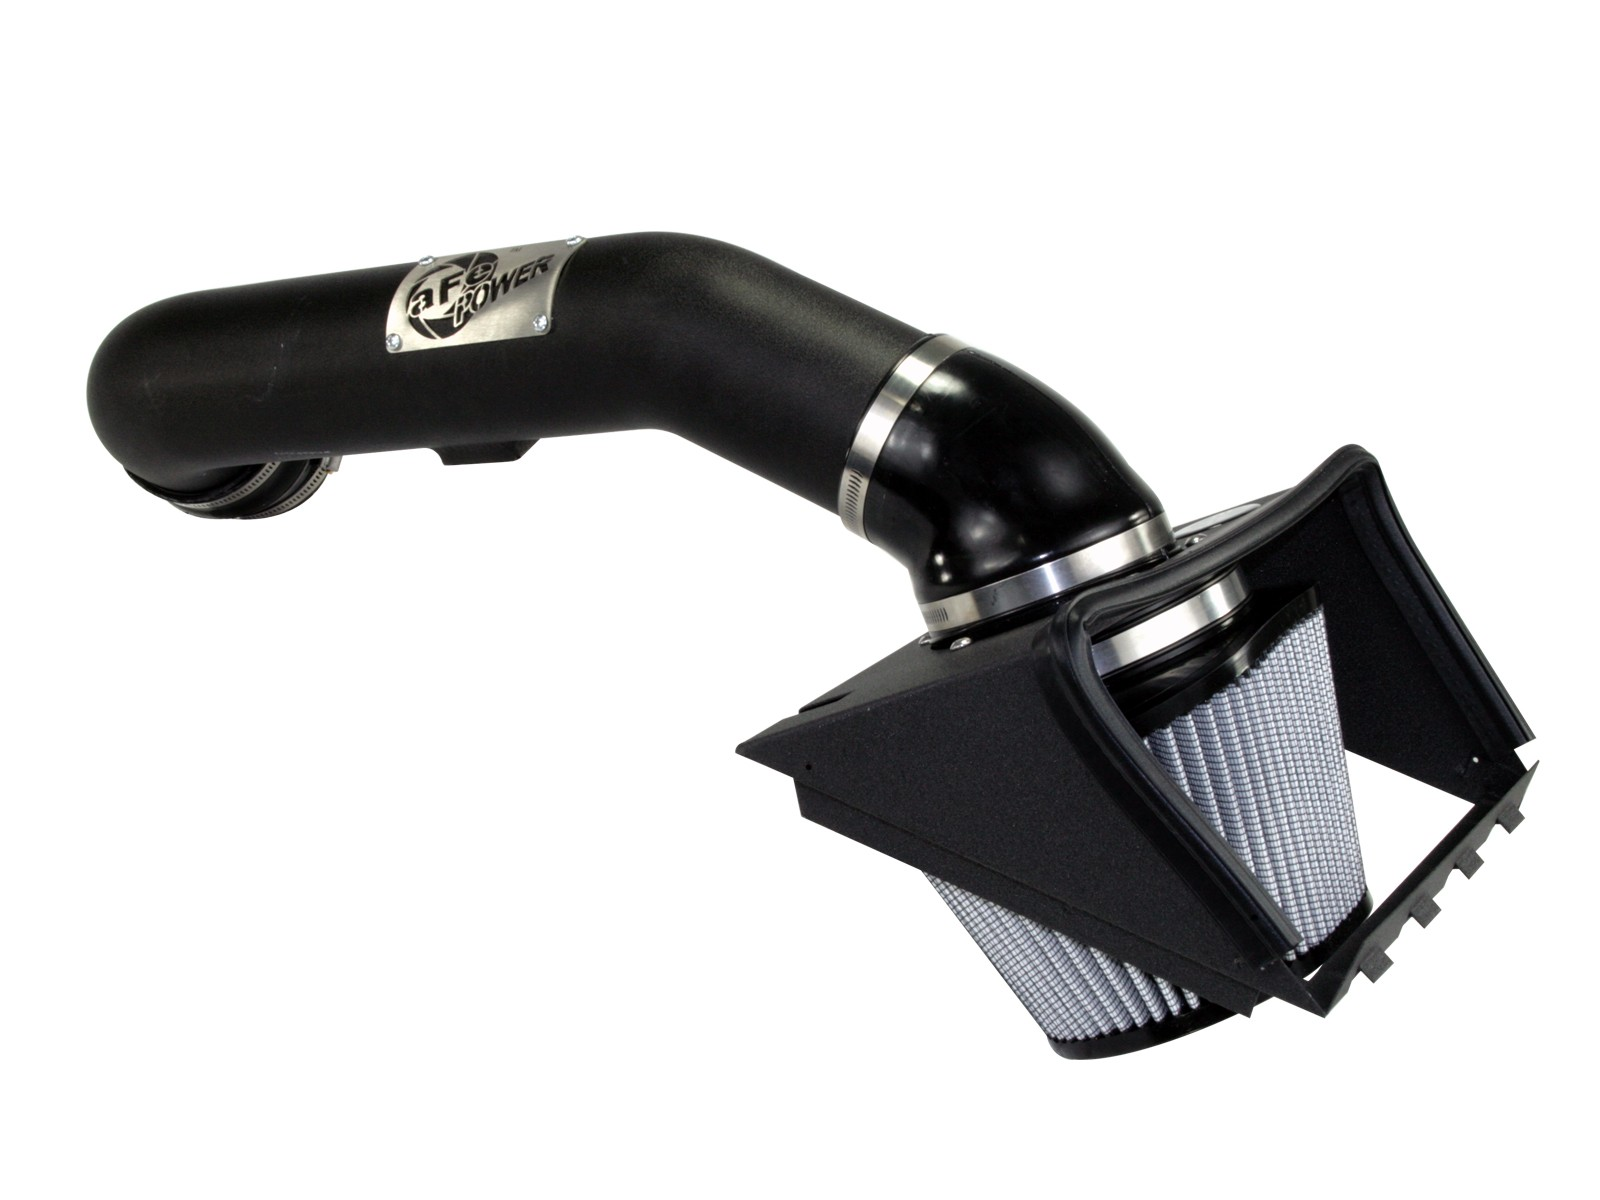 aFe POWER 51-11962-1B Magnum FORCE Stage-2 Pro DRY S Cold Air Intake System